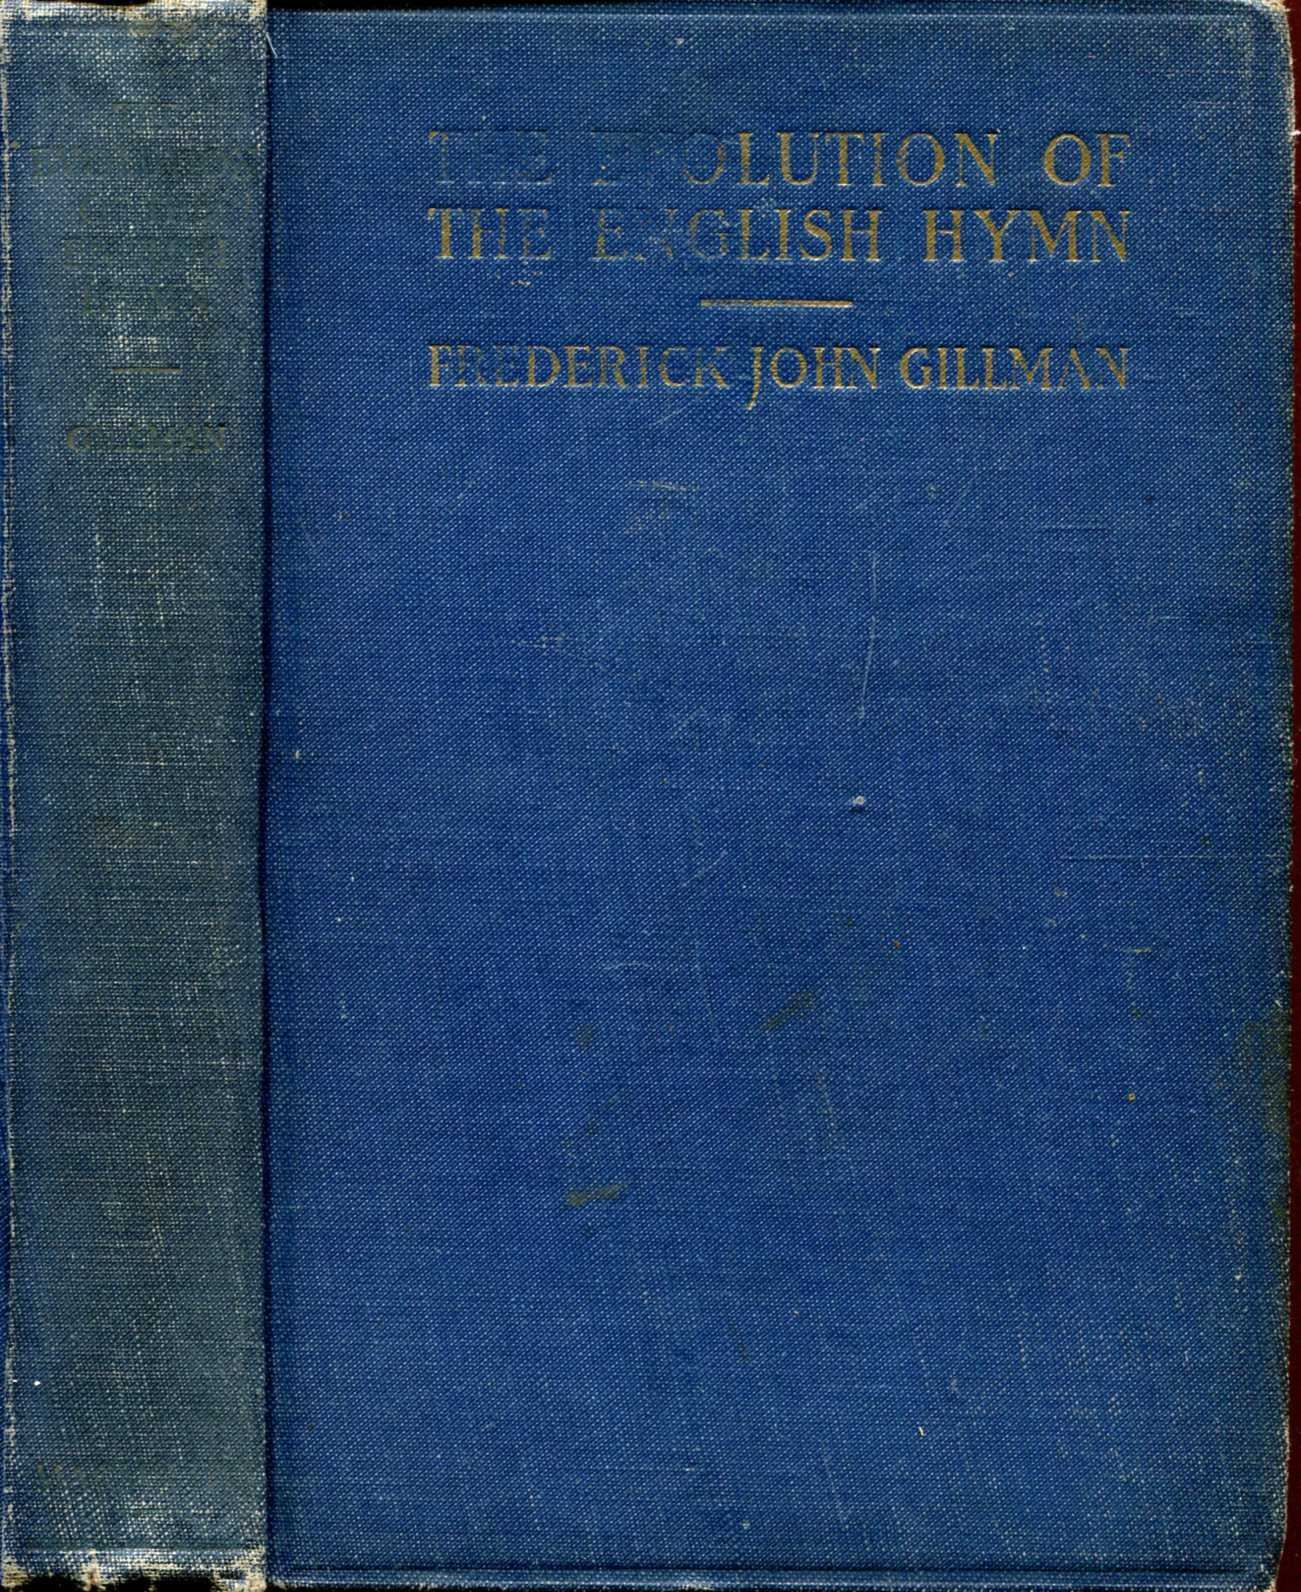 Image for The Evolution of the English Hymn, an historical survey of the origins and development of the hymns of the Christian Church